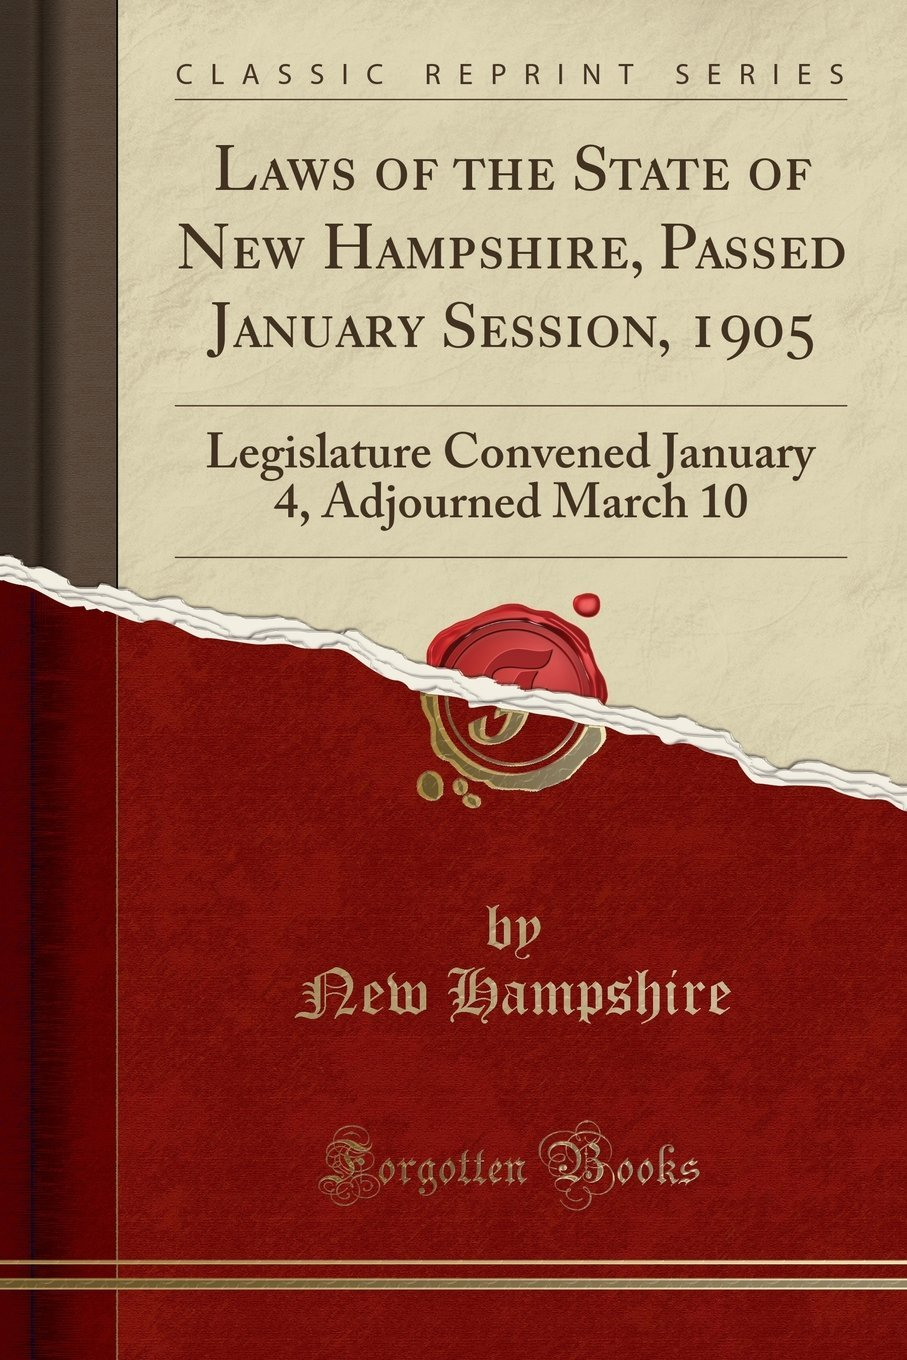 Download Laws of the State of New Hampshire, Passed January Session, 1905: Legislature Convened January 4, Adjourned March 10 (Classic Reprint) pdf